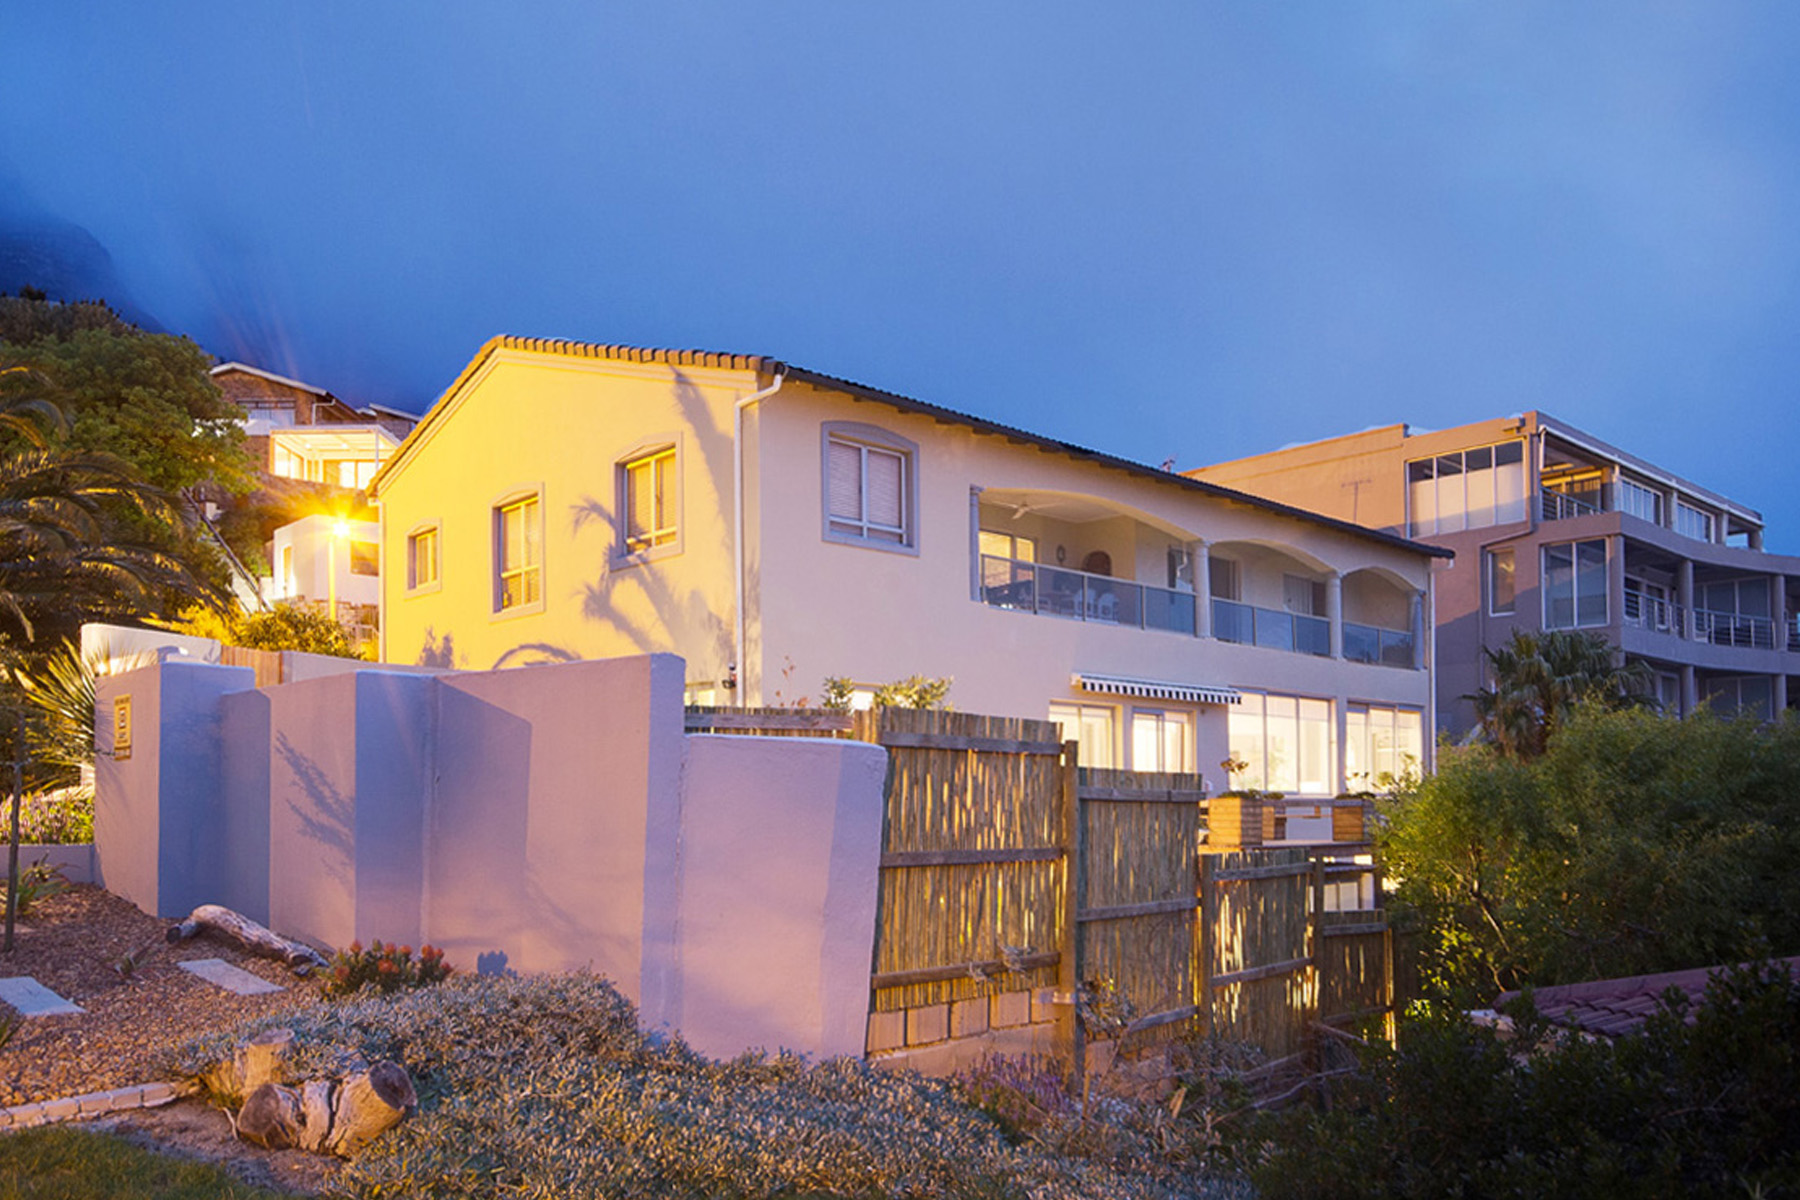 Apartment for Sale at A great investment offering dual living. Cape Town, Western Cape 8005 South Africa